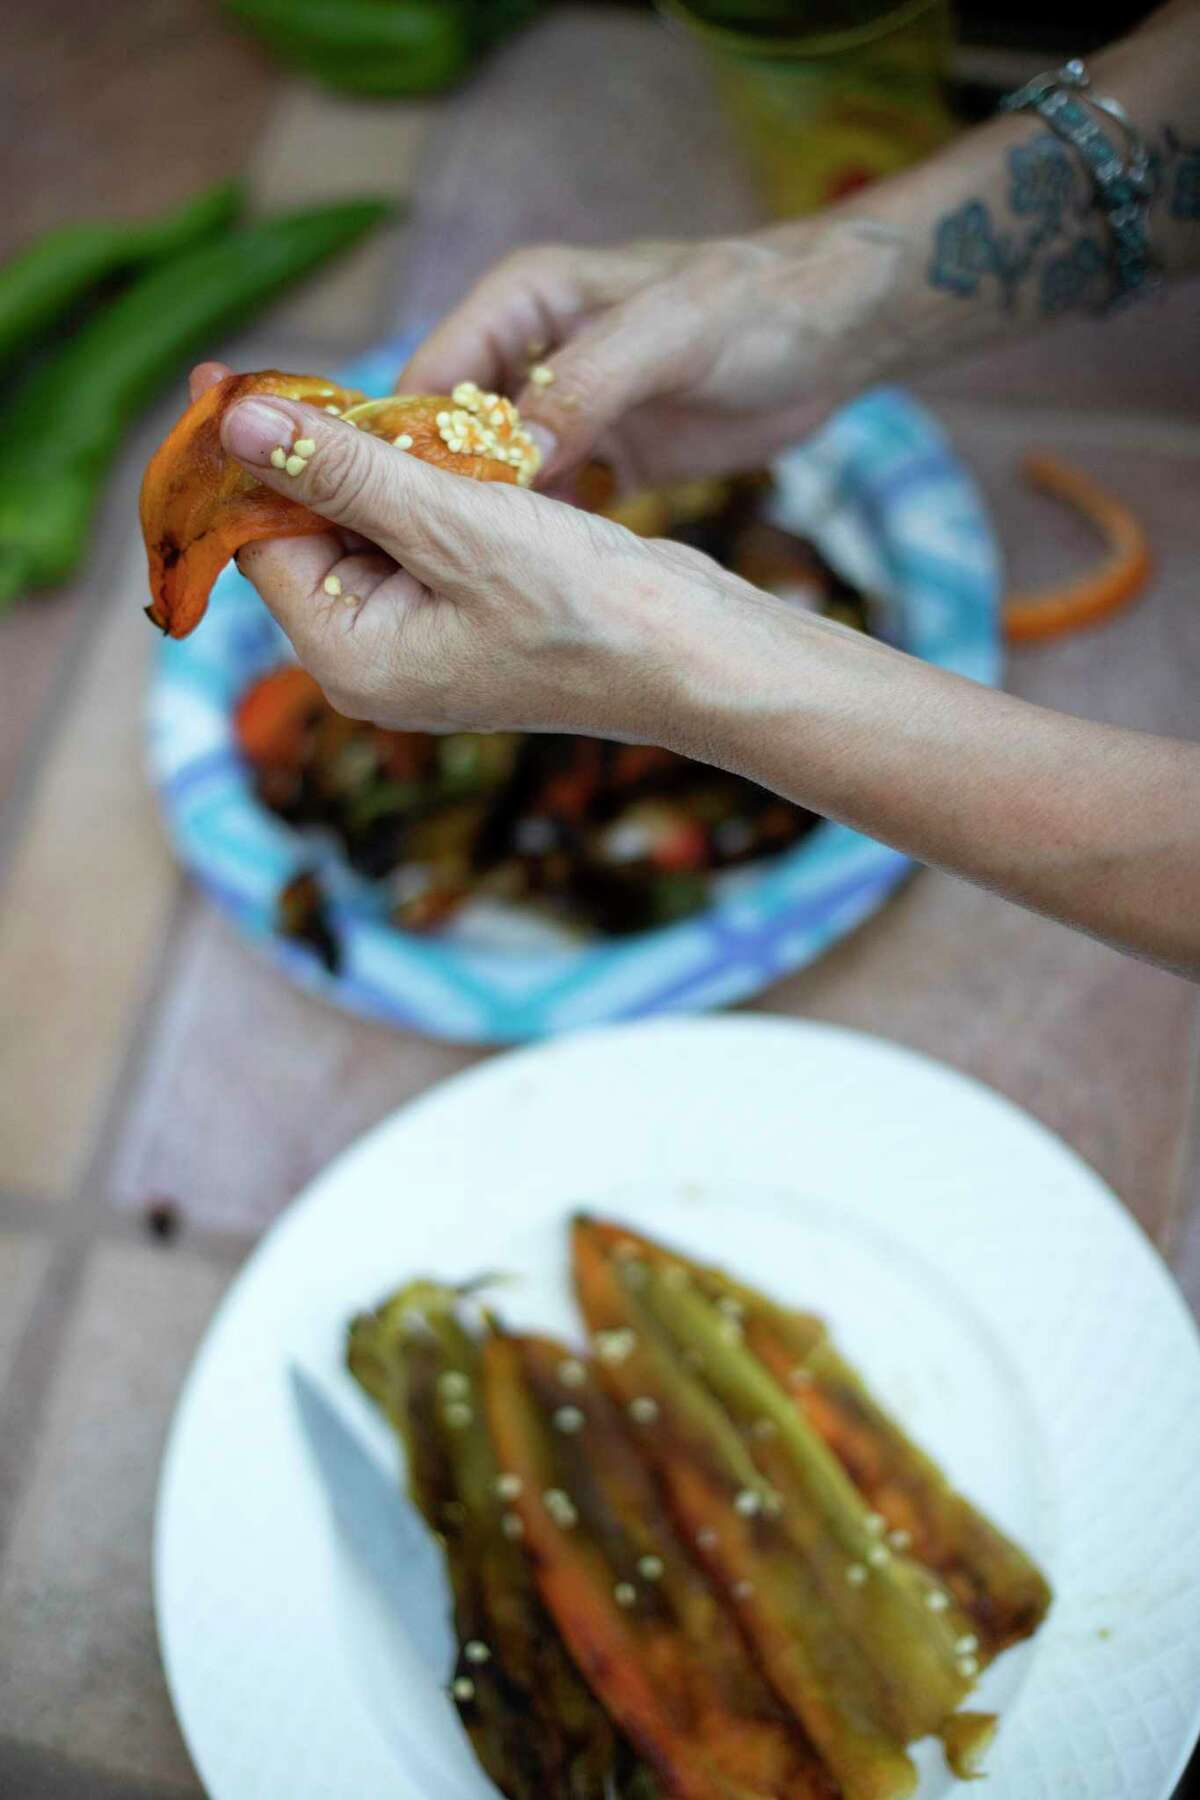 It's easier to peel roasted chile with your bare hands than while wearing gloves, but be sure to be very carefully wash your hands afterward.